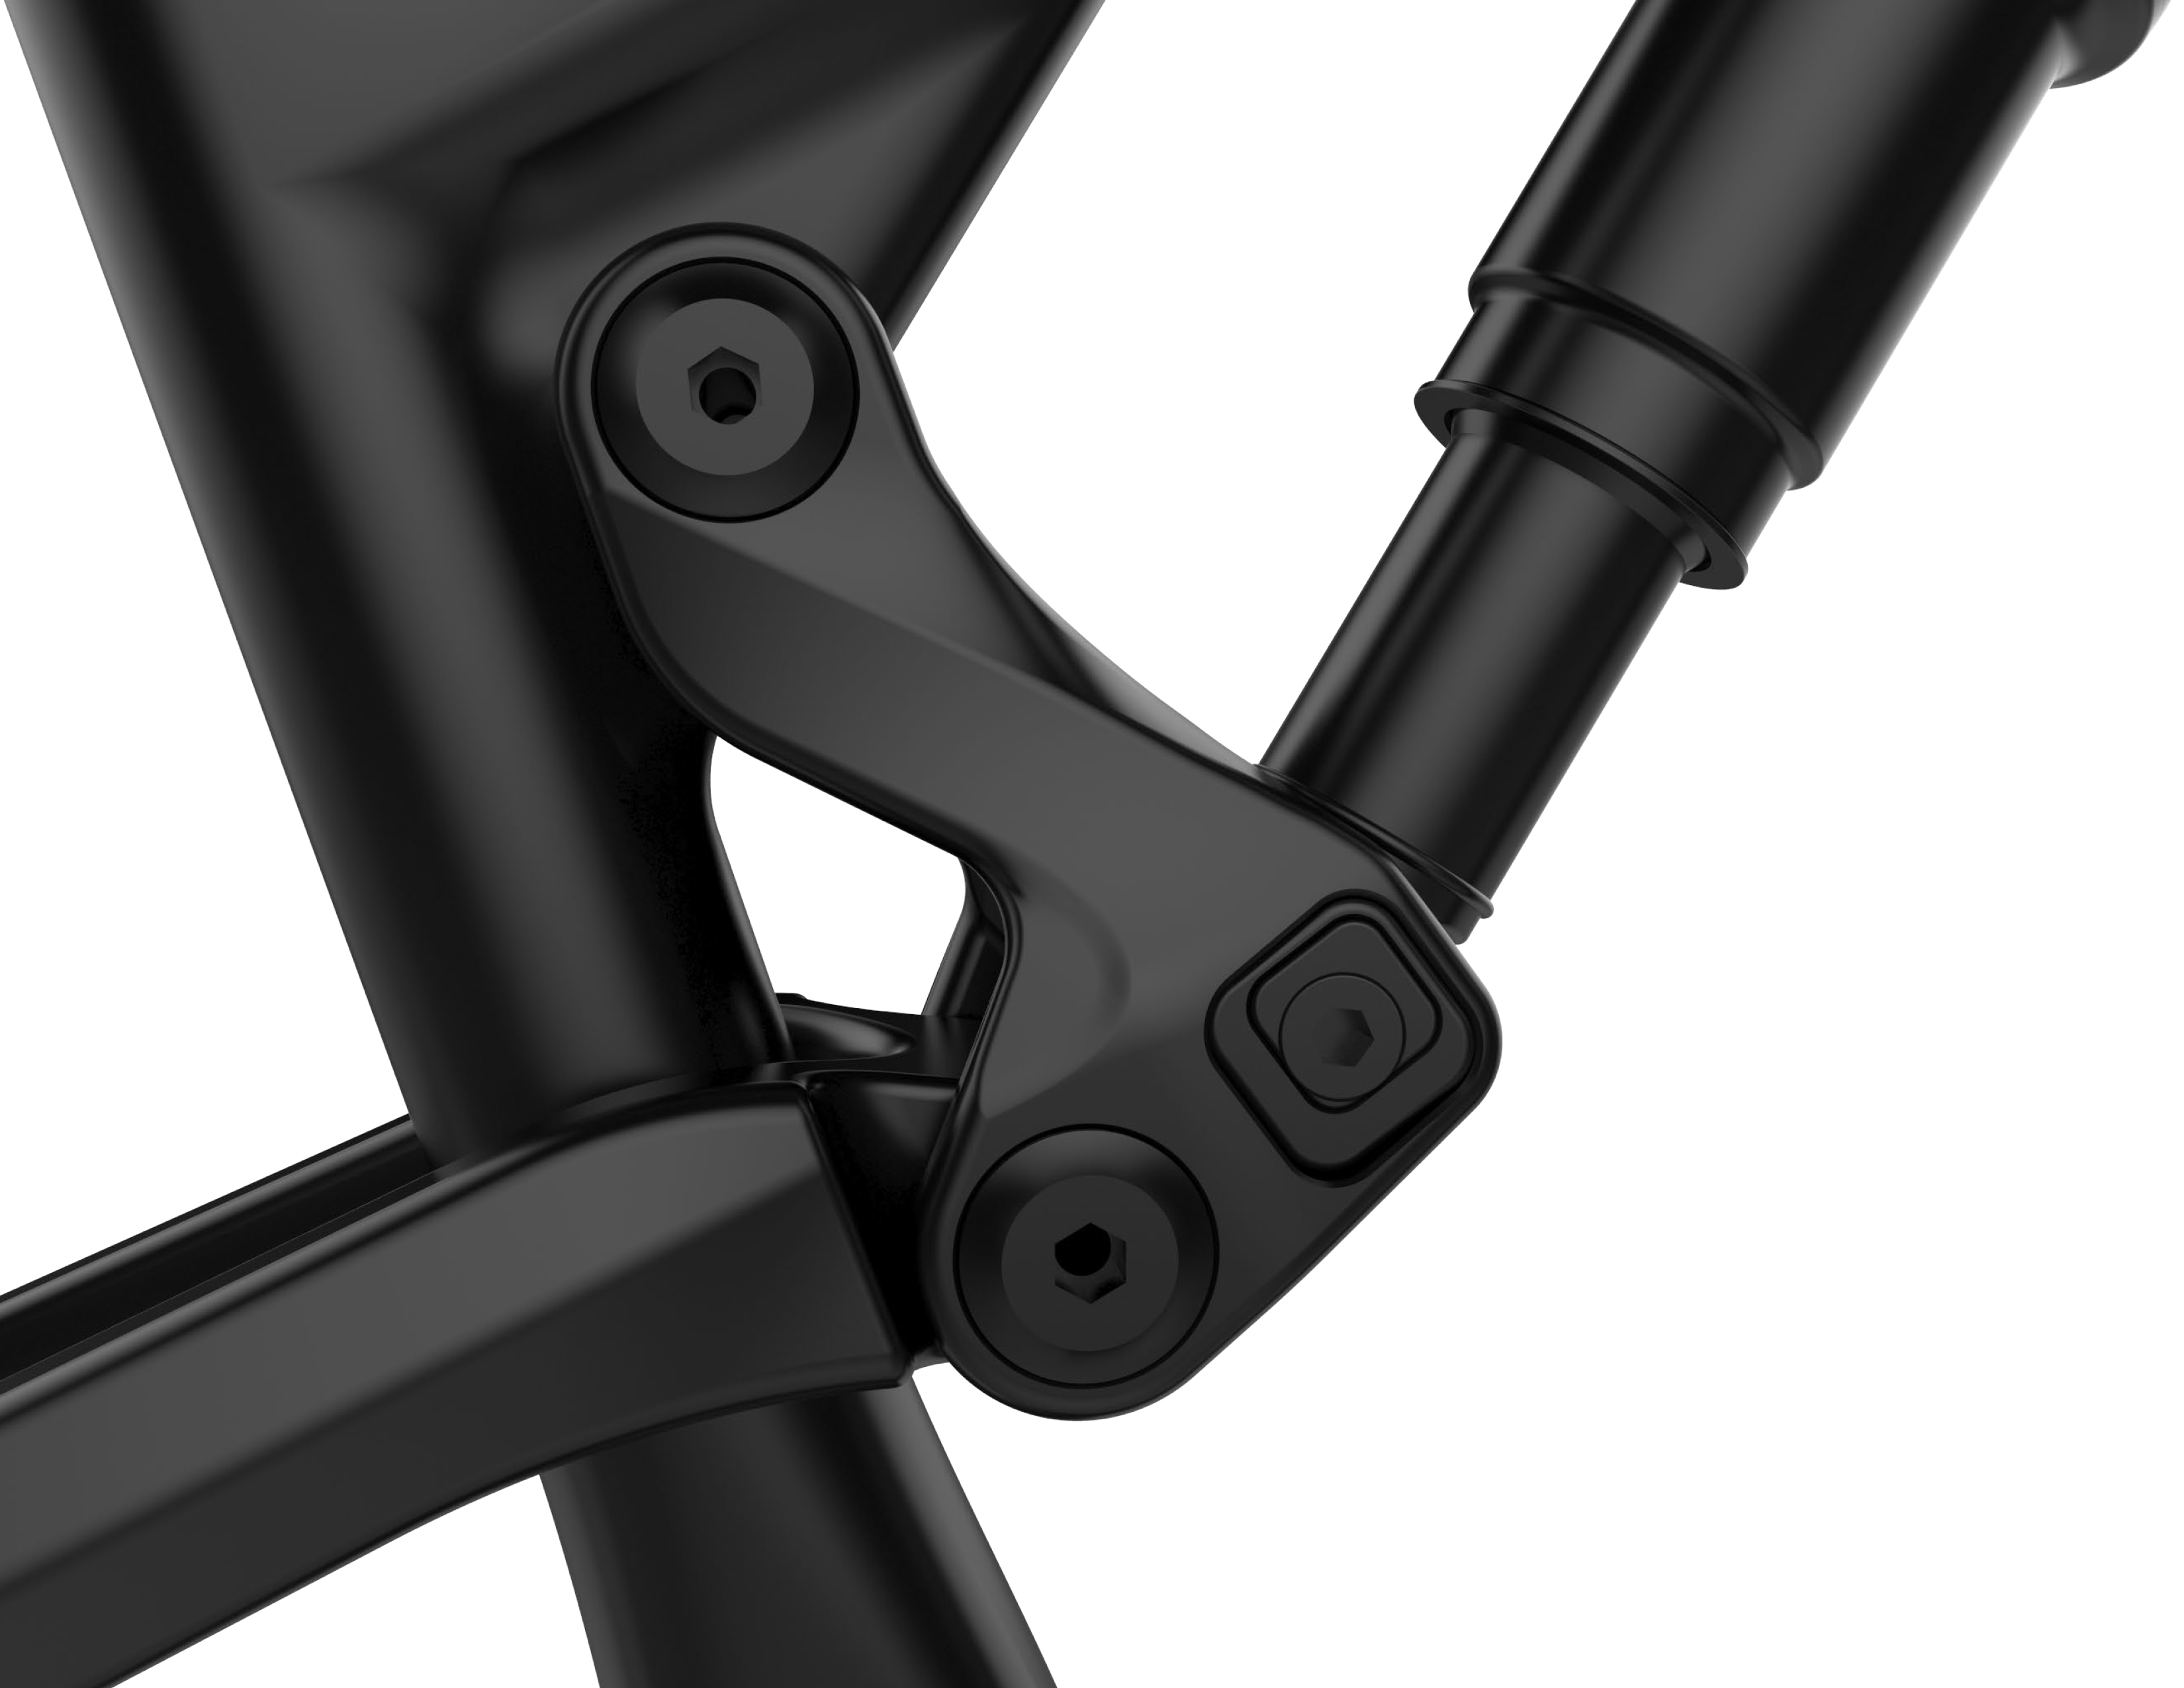 The Ride 9 system allows for easy adjustments to geometry and suspension.